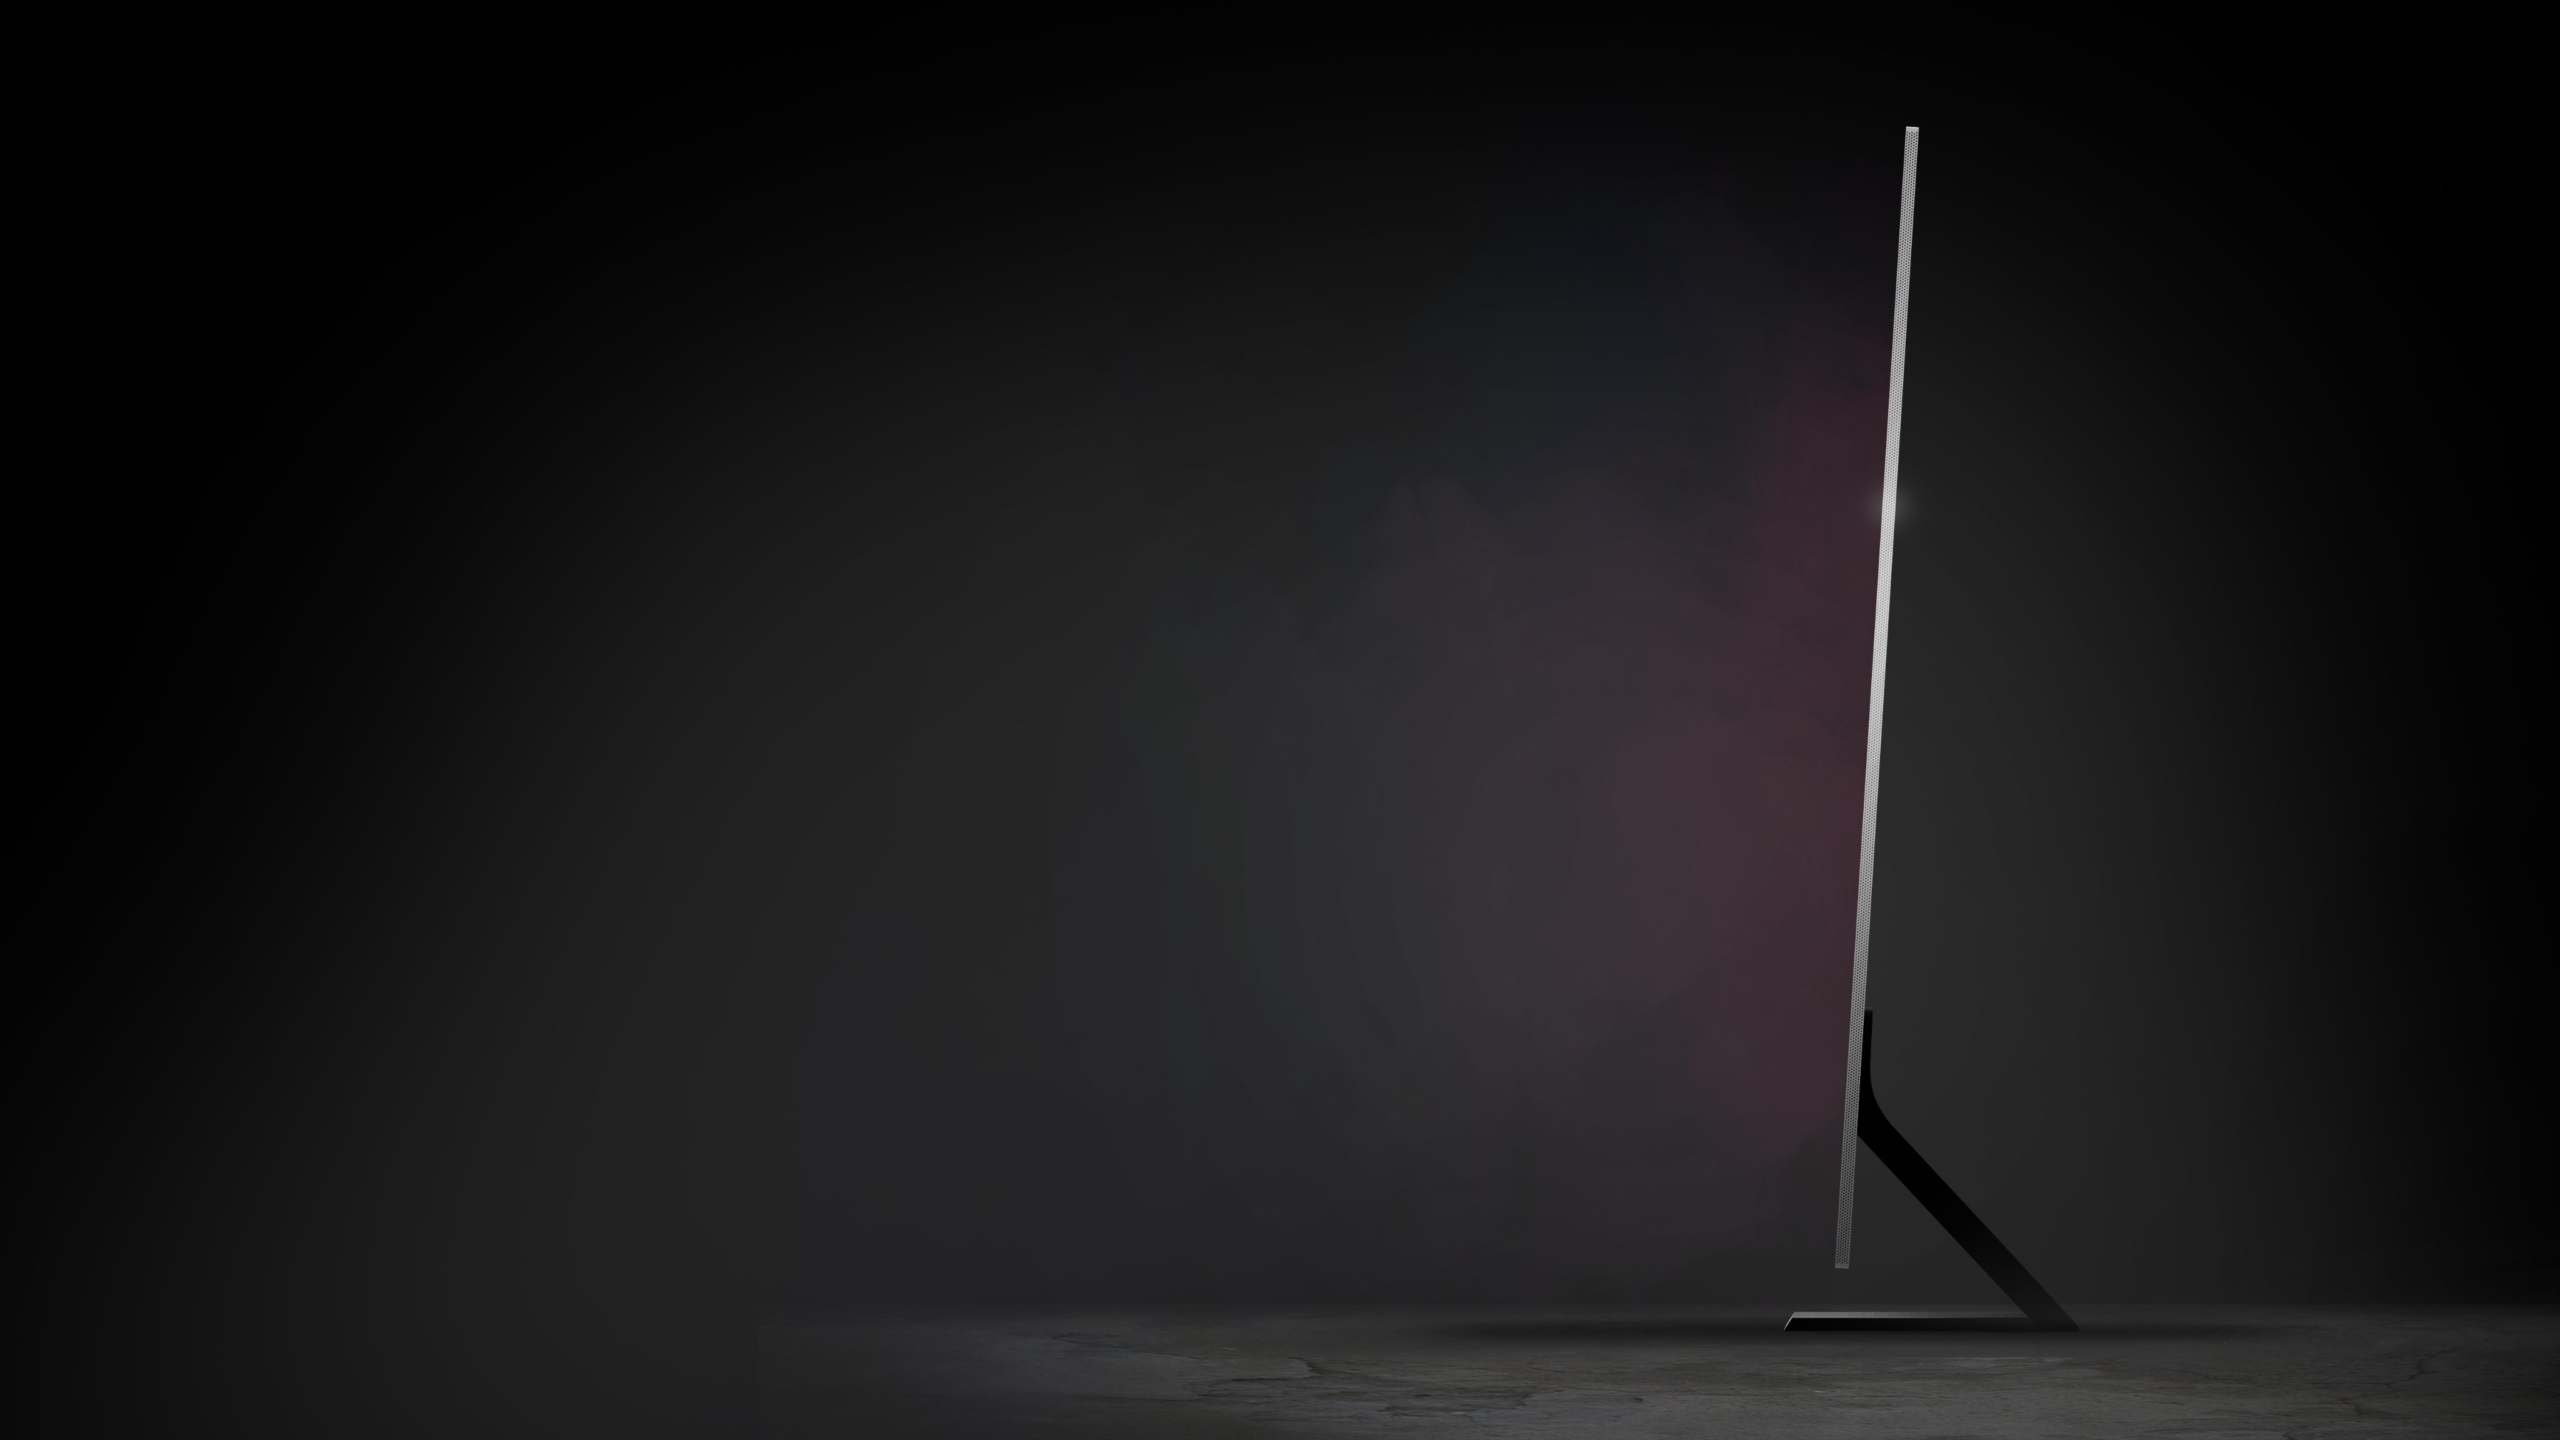 Samsung announces the first true 'zero bezel' TV with several groundbreaking features 2